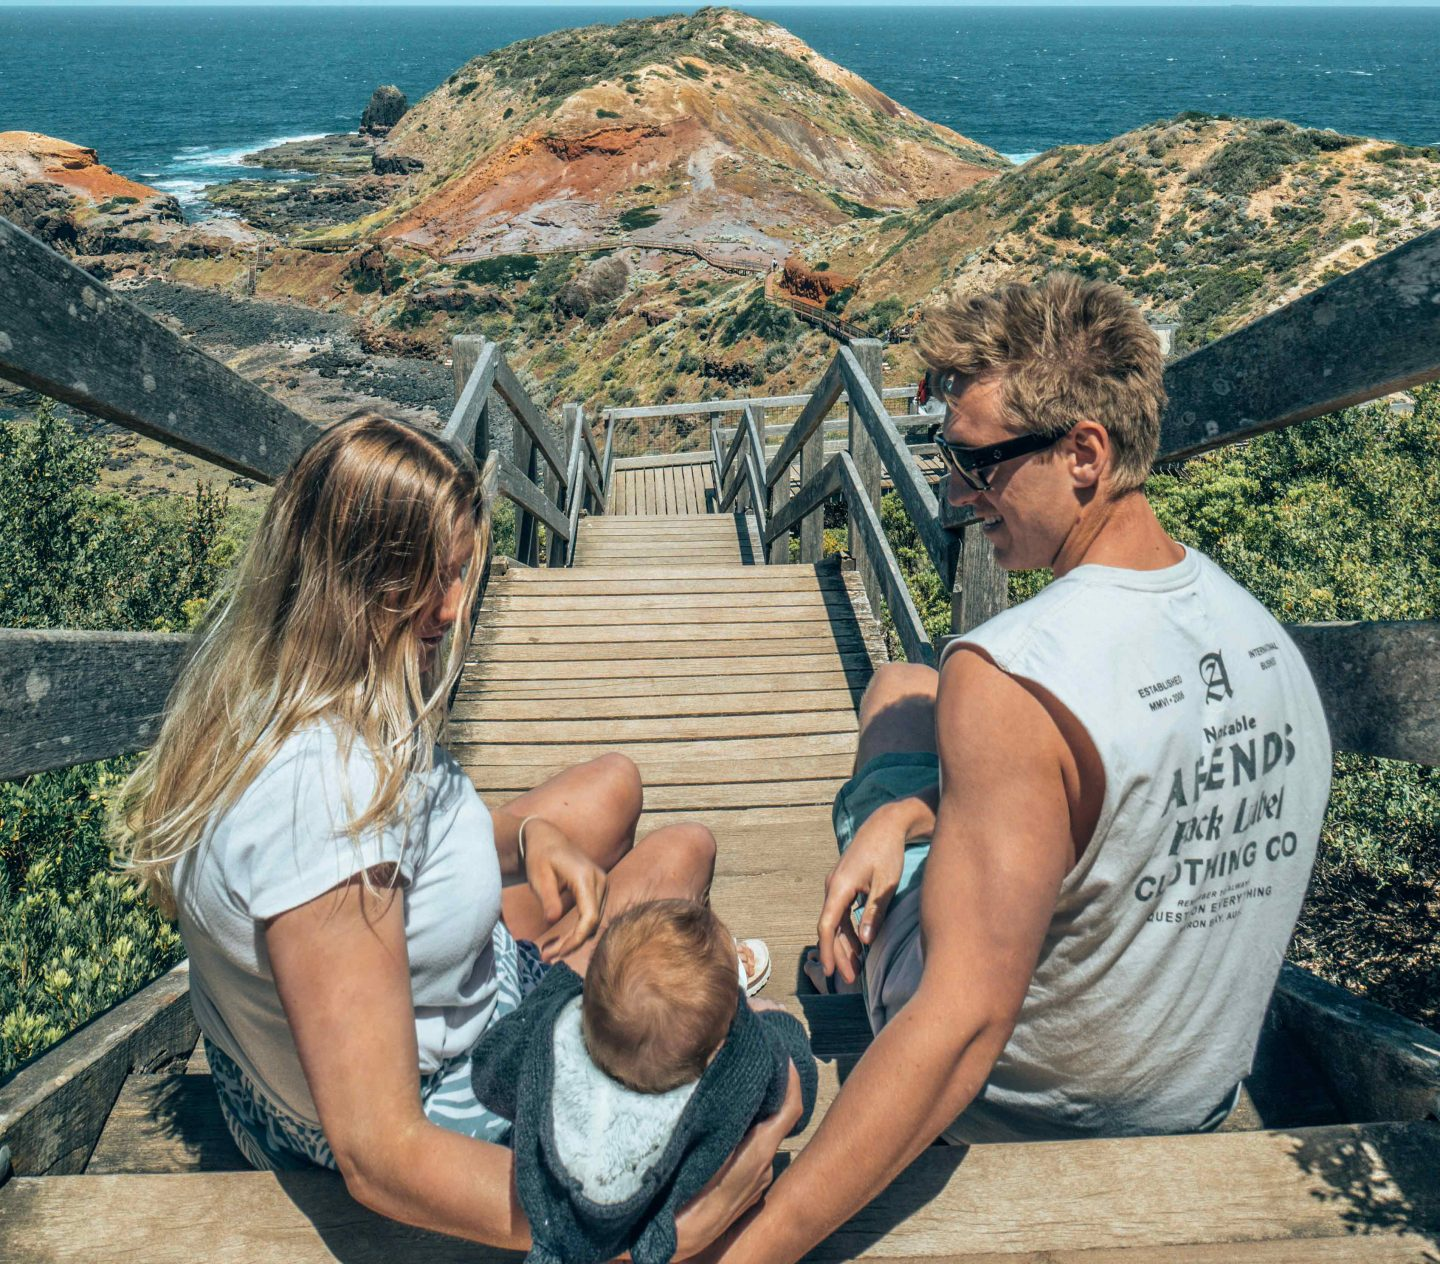 Cape Schanck view - Live Life and Roam - Instagrammable Spots on the Mornington Peninsula